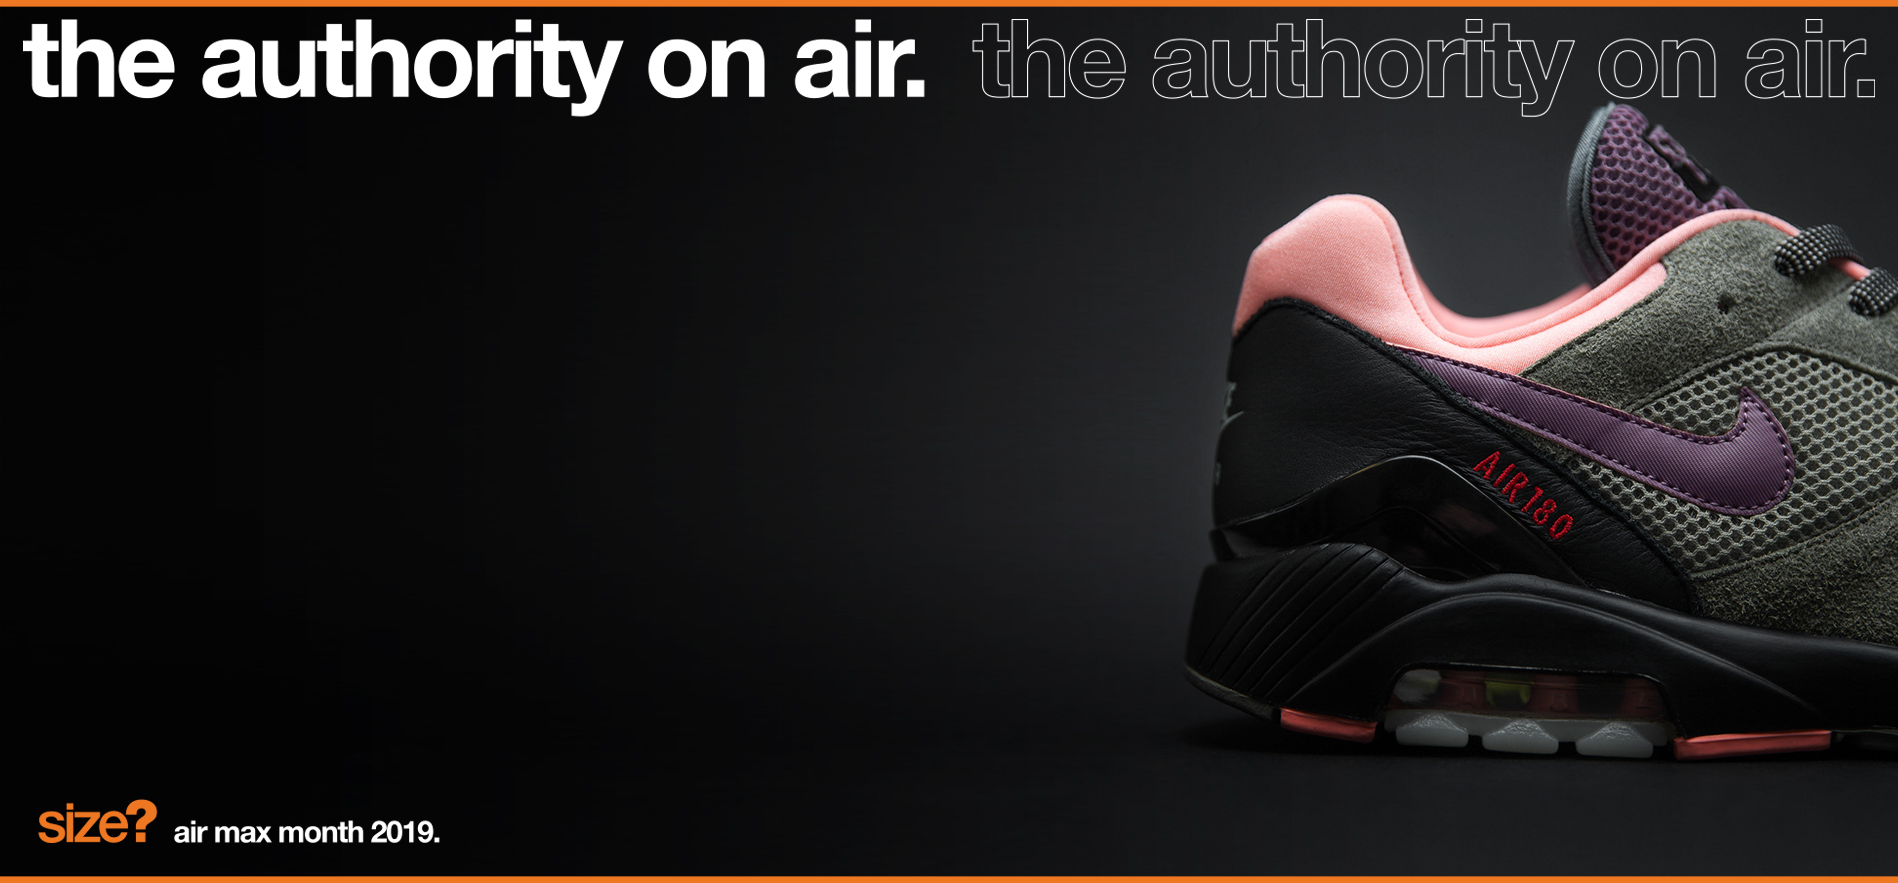 the authority on air: Air Max 1 & Air Max 180 'Dusk to Dawn'